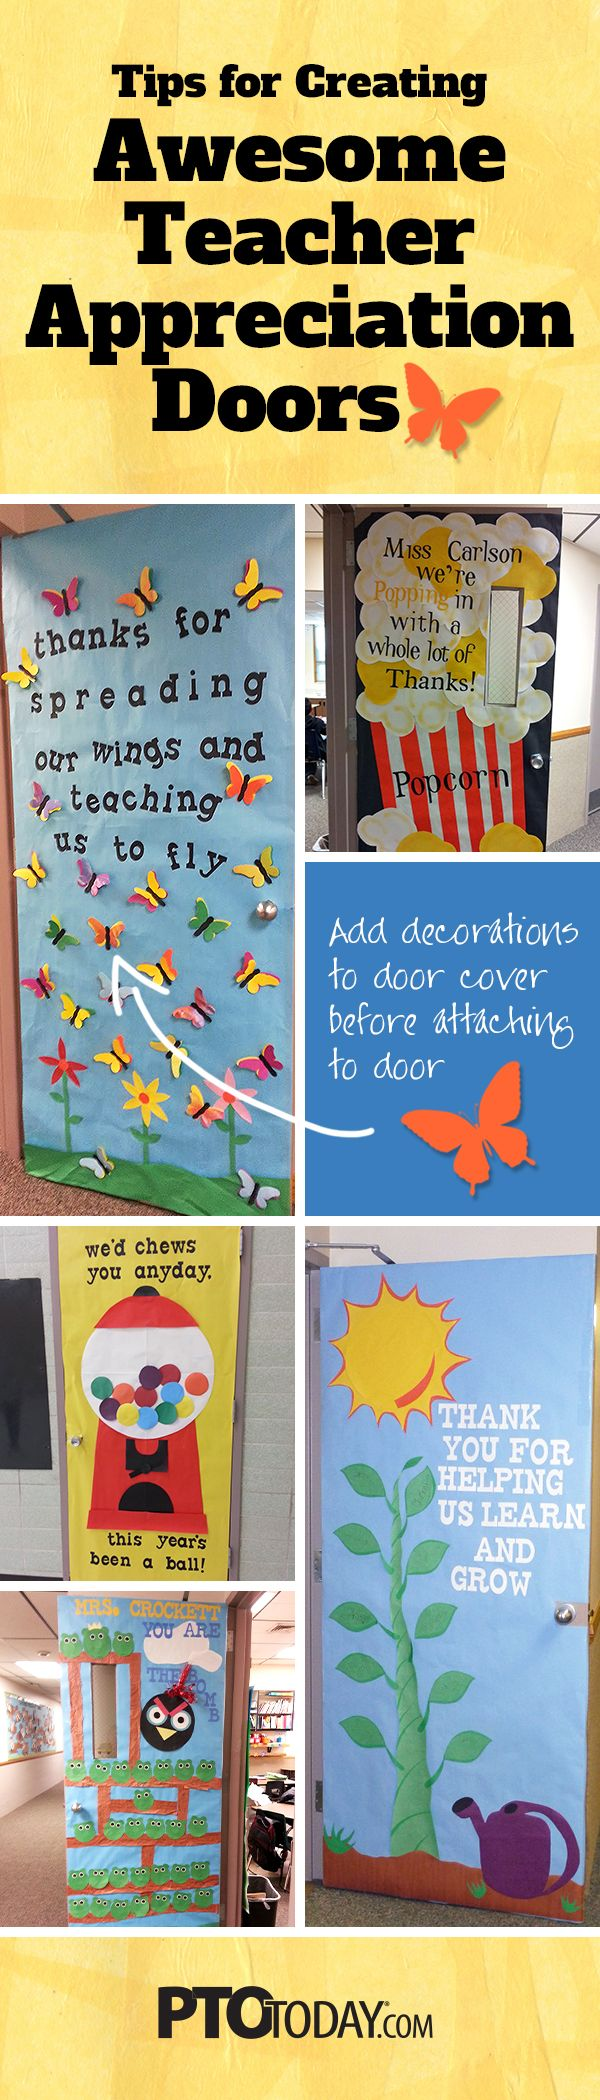 Teacher Appreciation Door Decorating Ideas-- Tips for PTO and PTA Leaders!